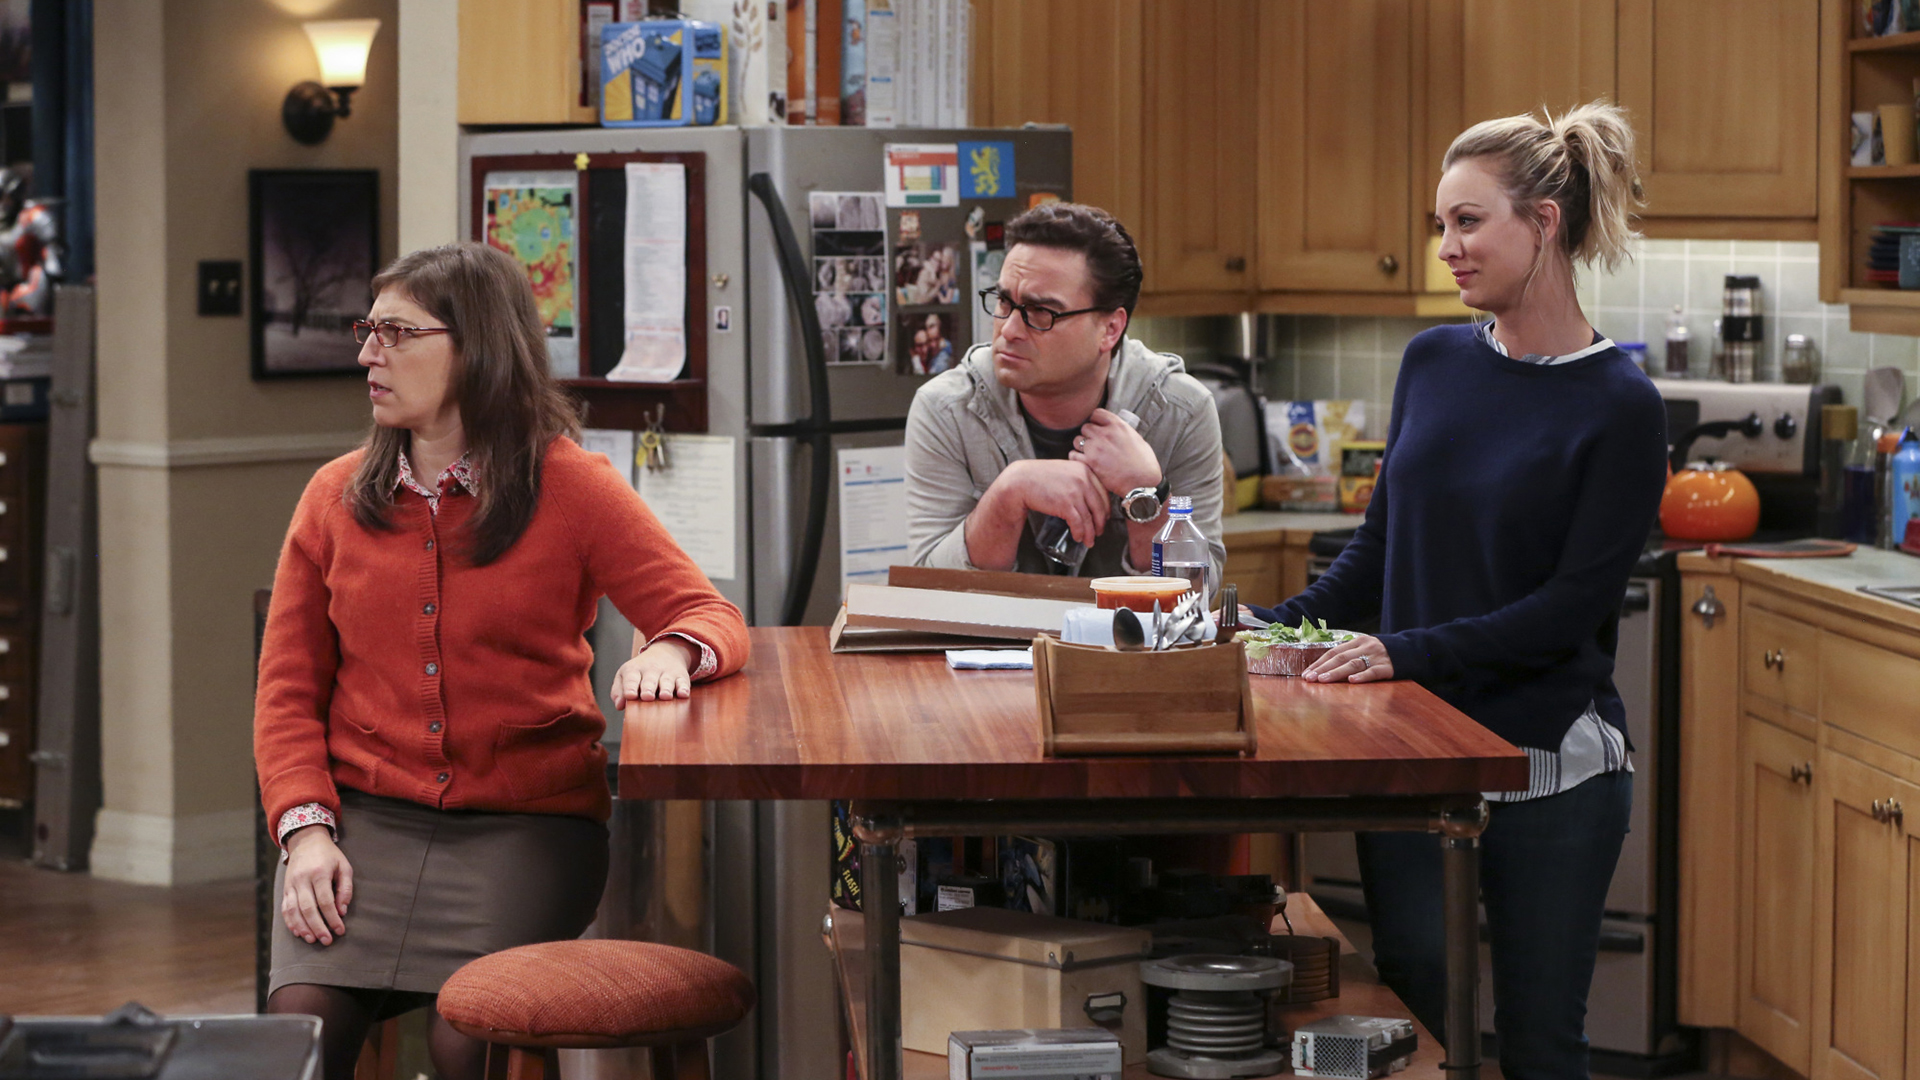 Amy, Leonard, and Penny don't know what to make of Sheldon's antics.